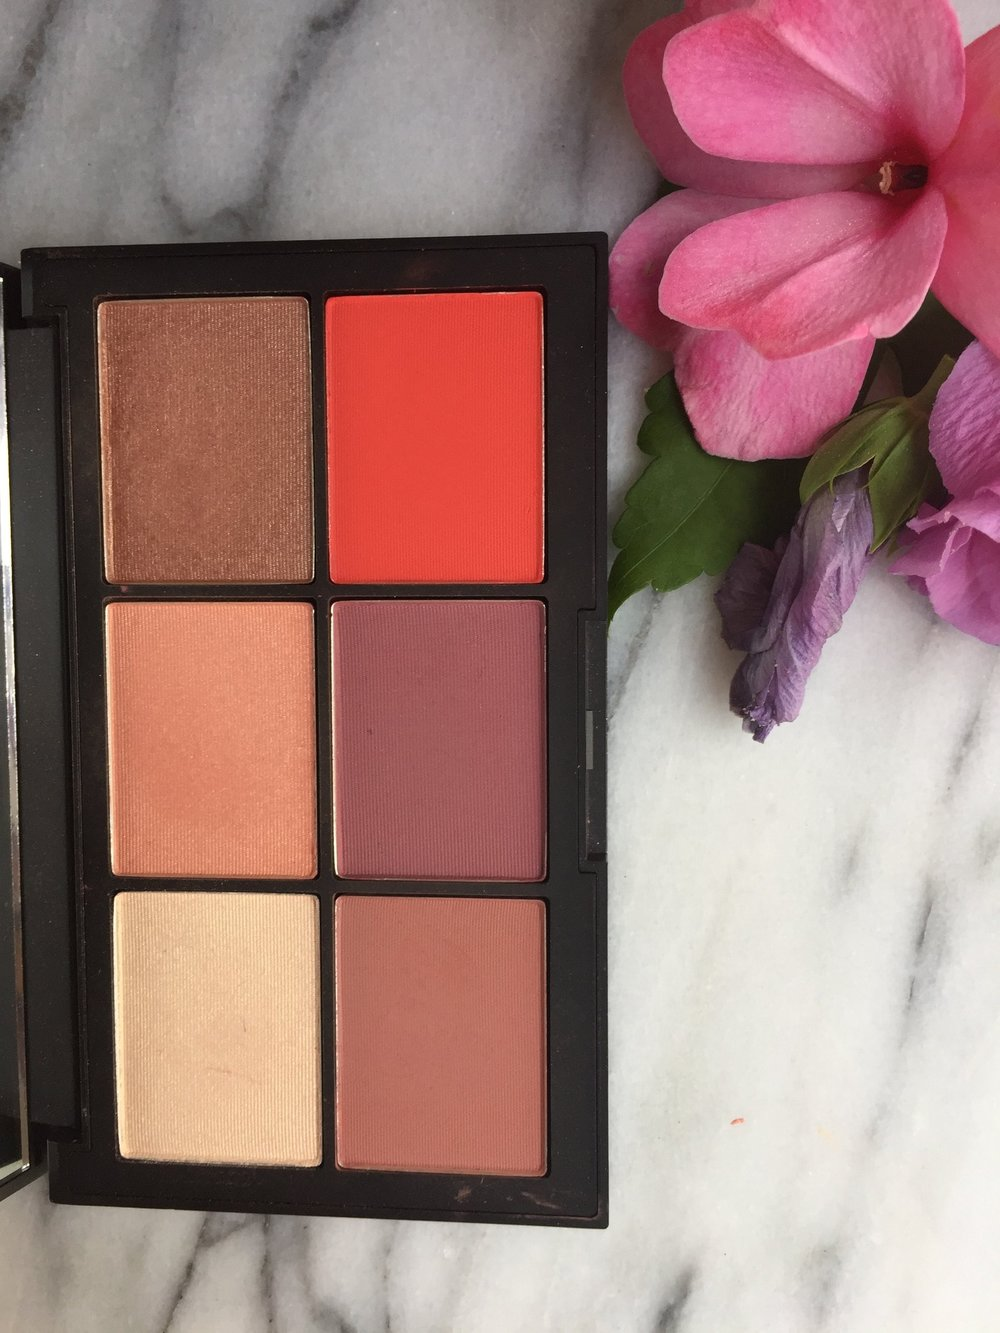 Nars | Unfiltered 1 Cheek Palette